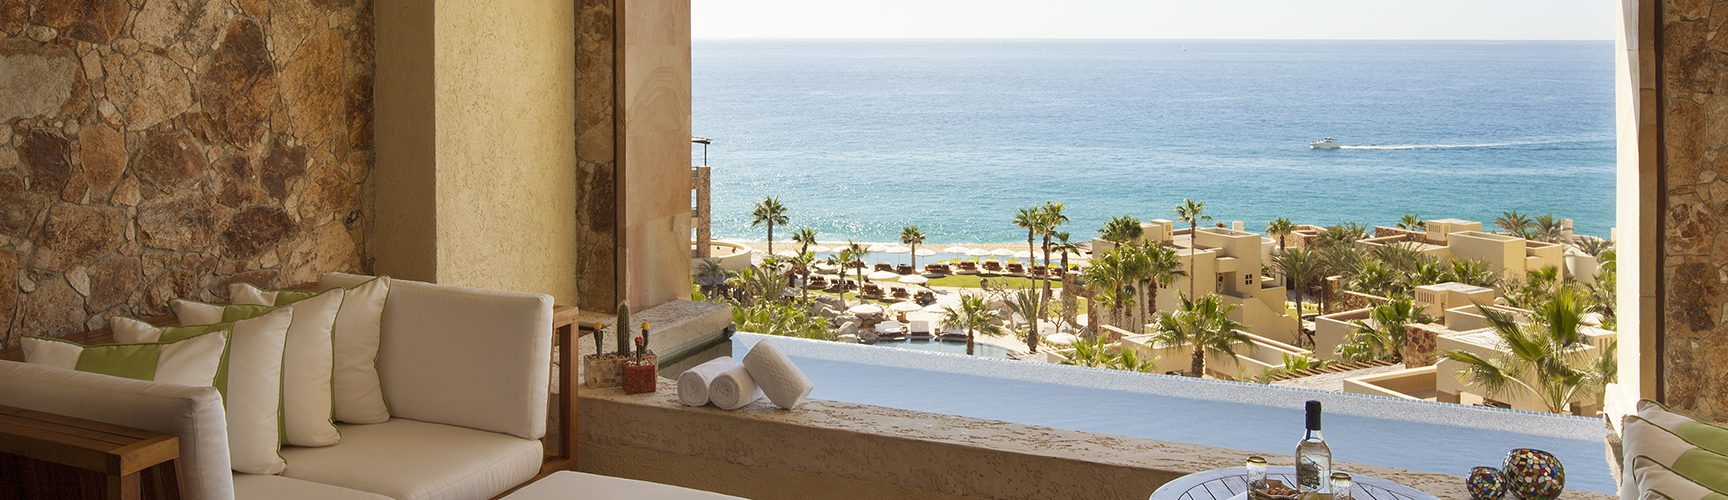 Hotel Rooms With Private Pool Resort At Pedregal - Rooms with pools